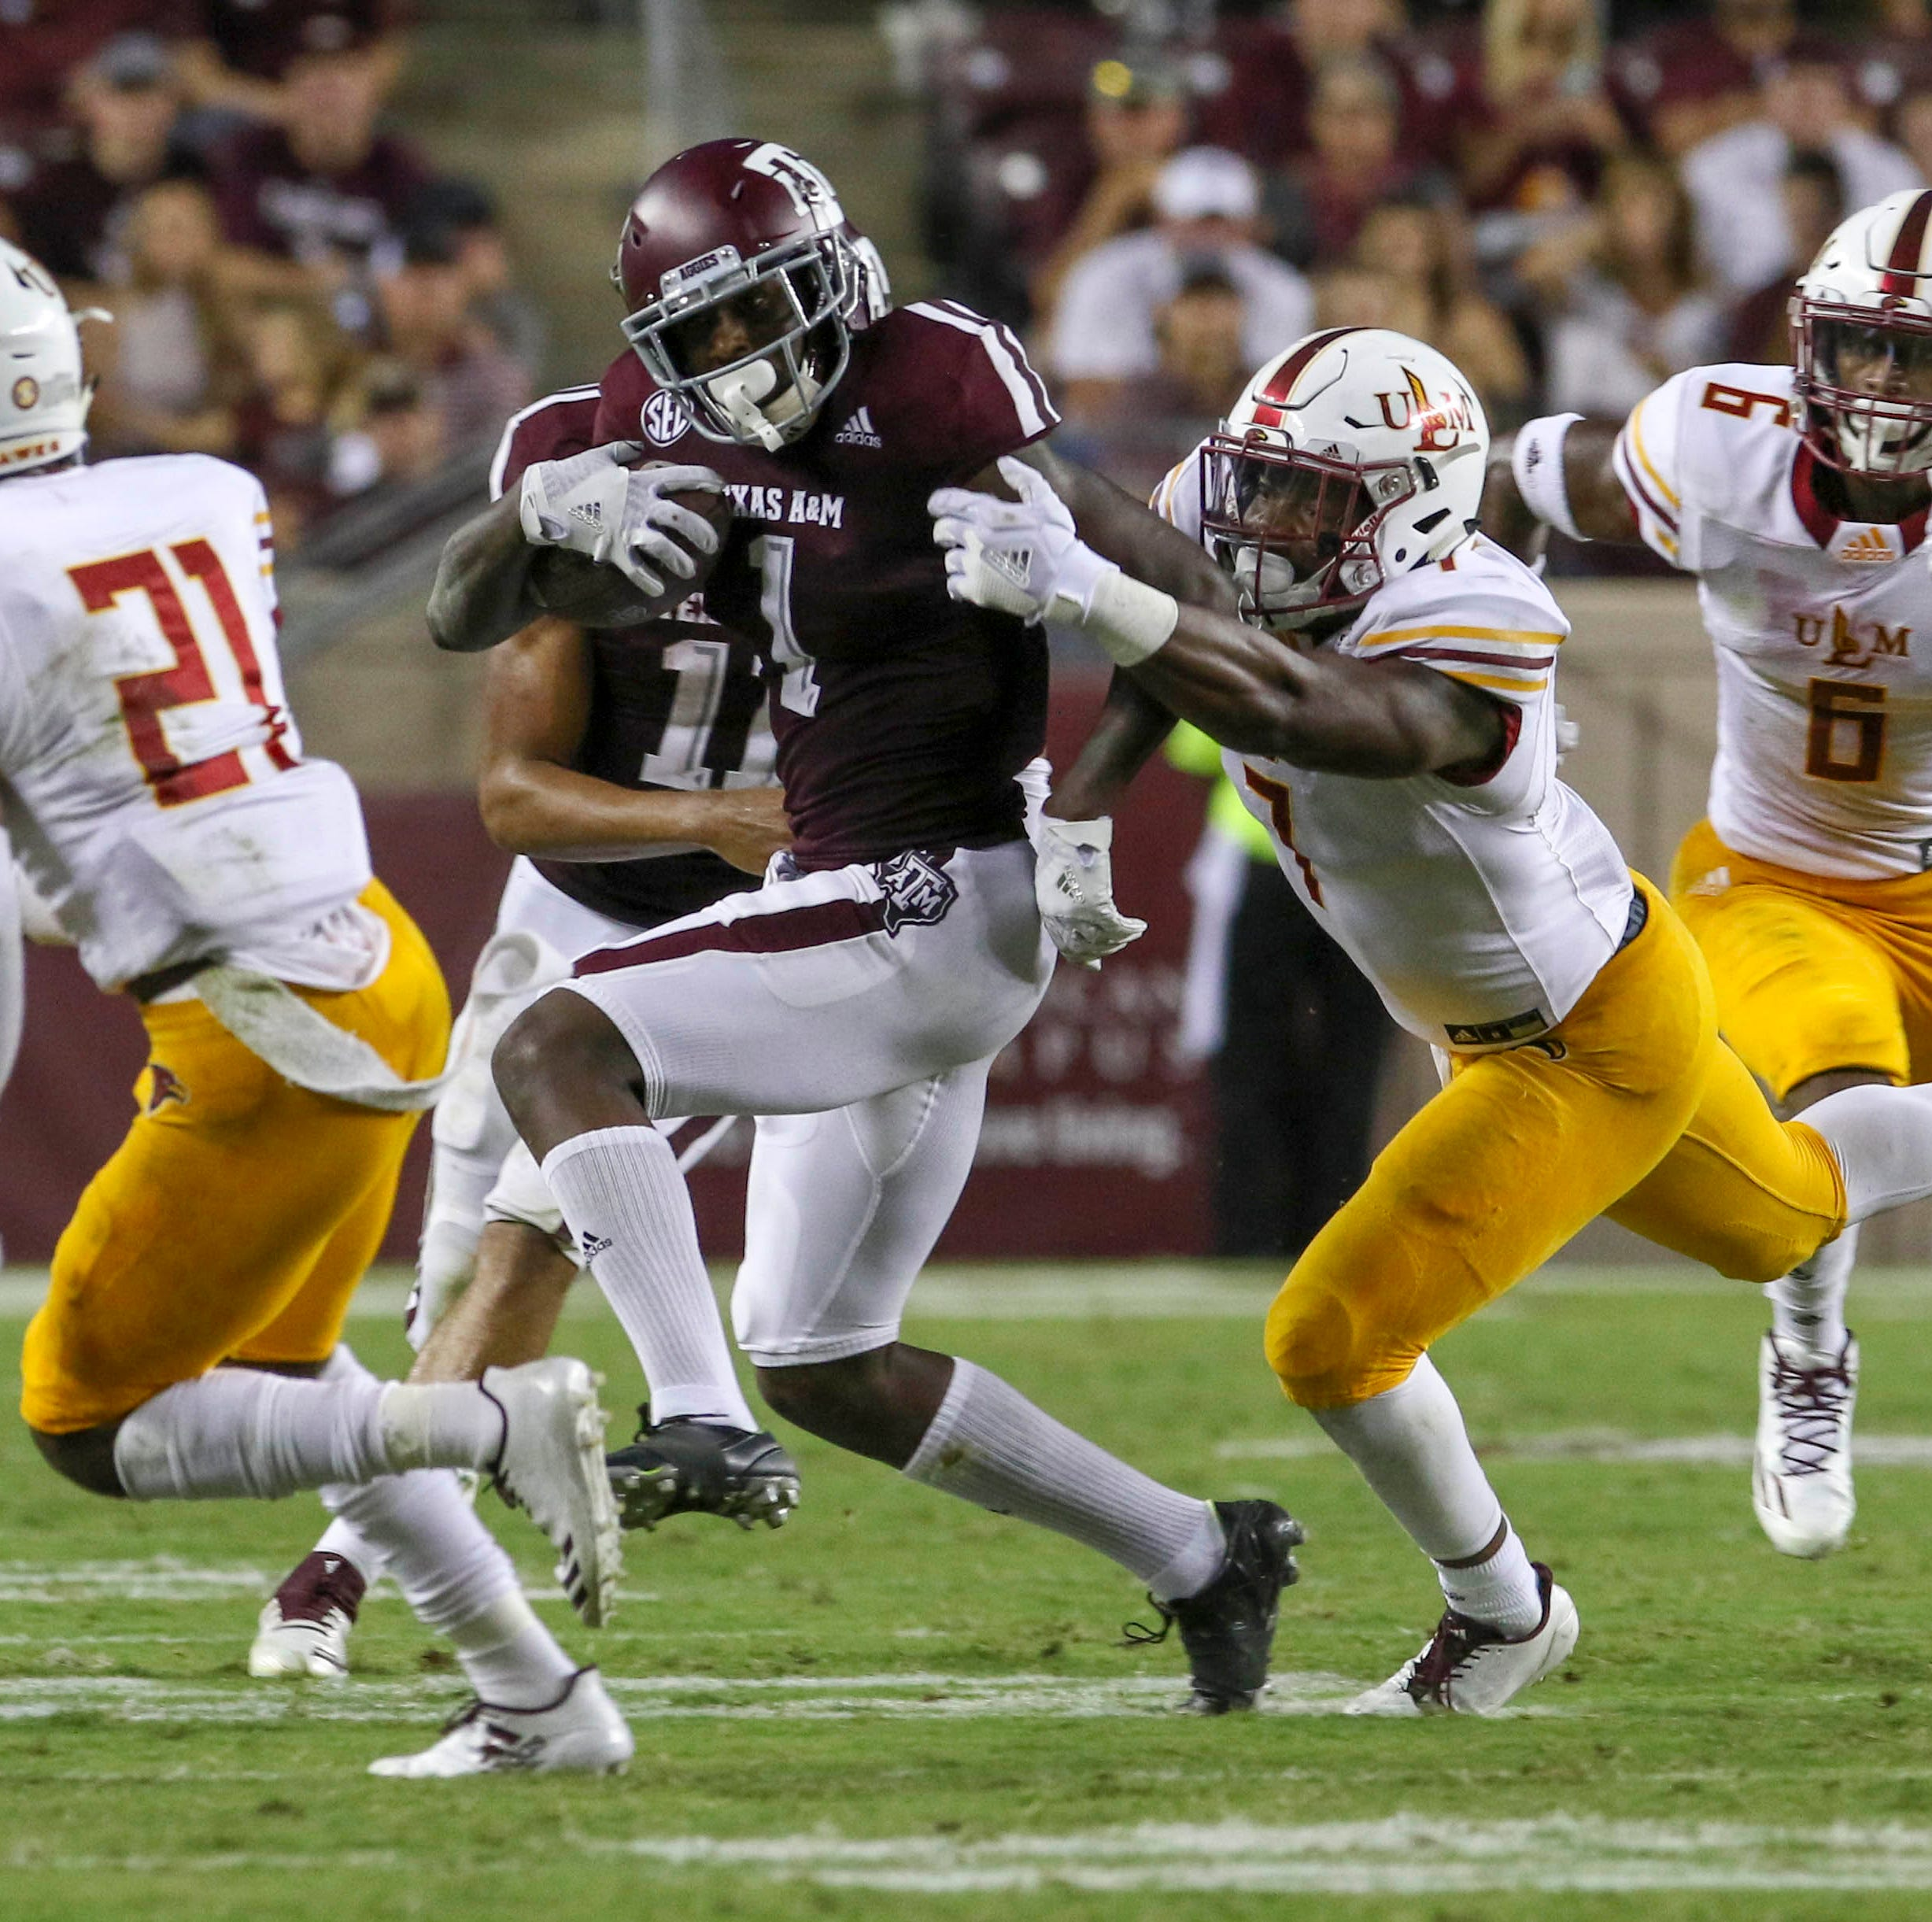 ULM strays from upset formula in Texas A&M loss